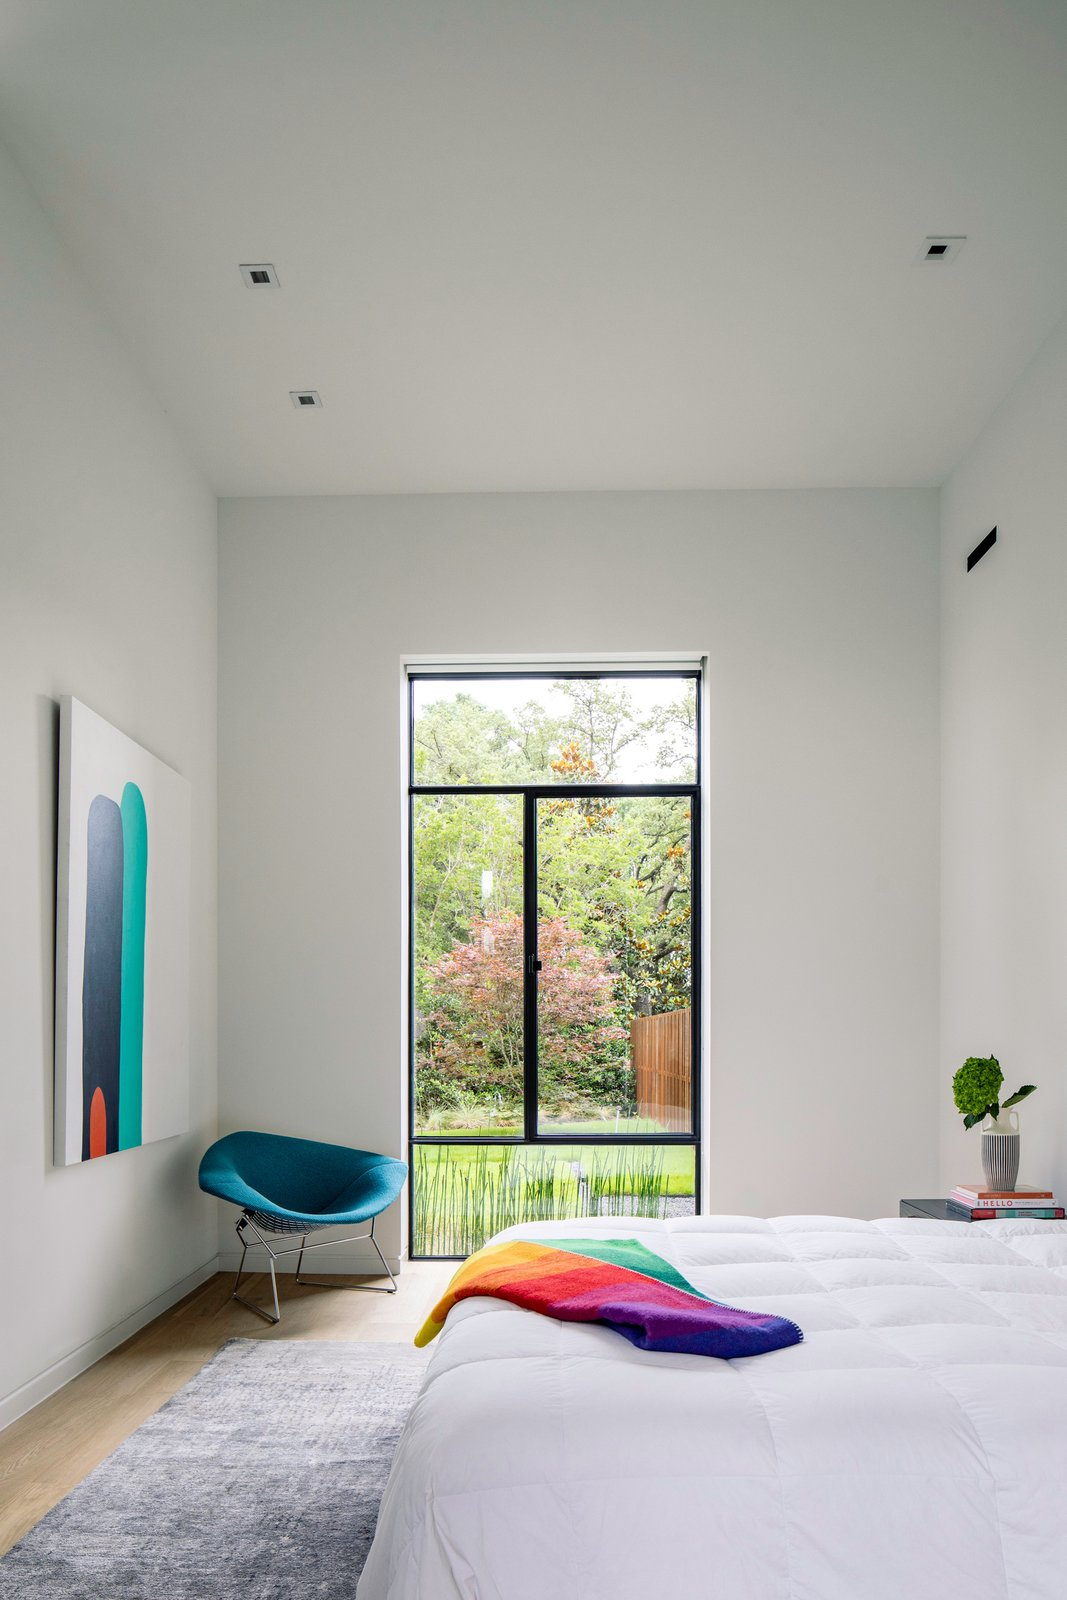 Bedroom, Recessed Lighting, Chair, Light Hardwood Floor, and Bed Taula House by M Gooden Design  |  Guest Room  Taula House by M Gooden Design